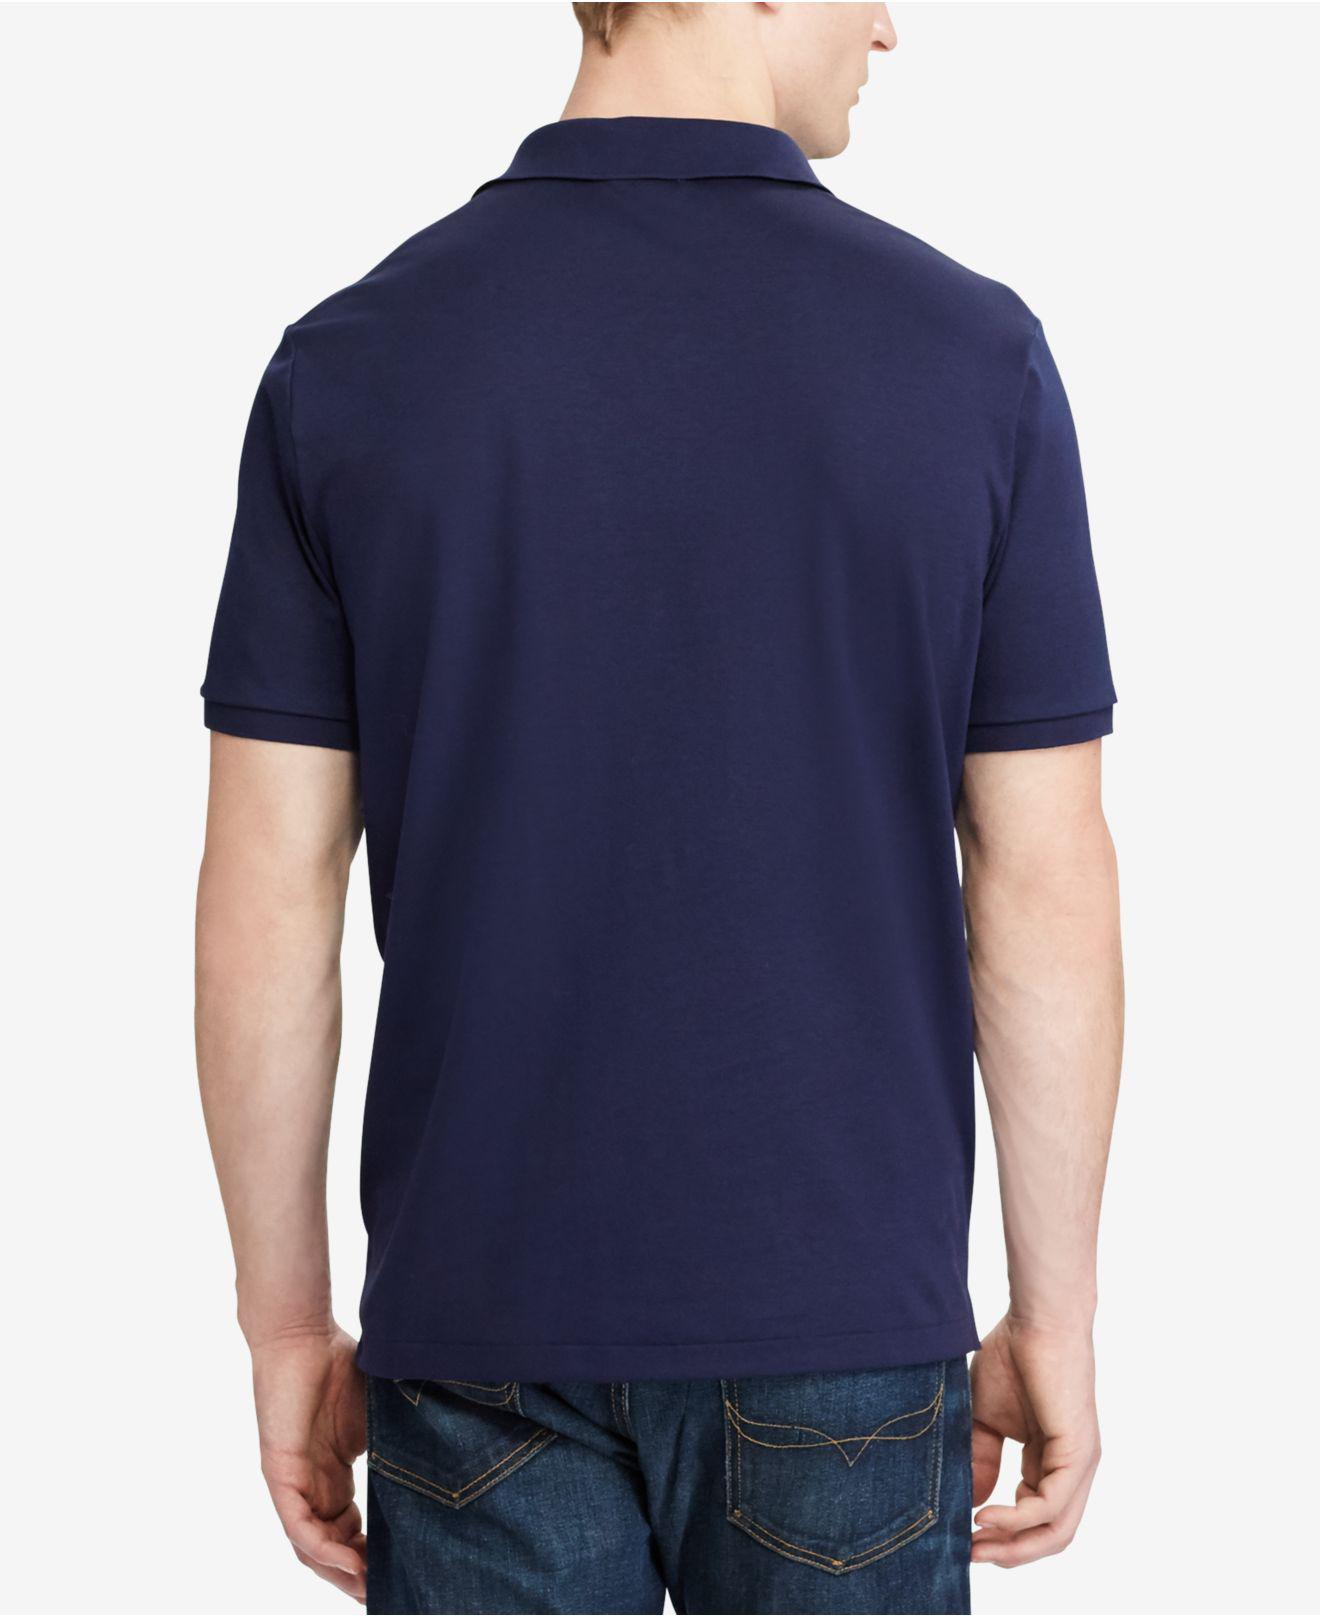 354c8aaae Lyst - Polo Ralph Lauren Custom Slim Fit Soft-touch Polo in Blue for Men